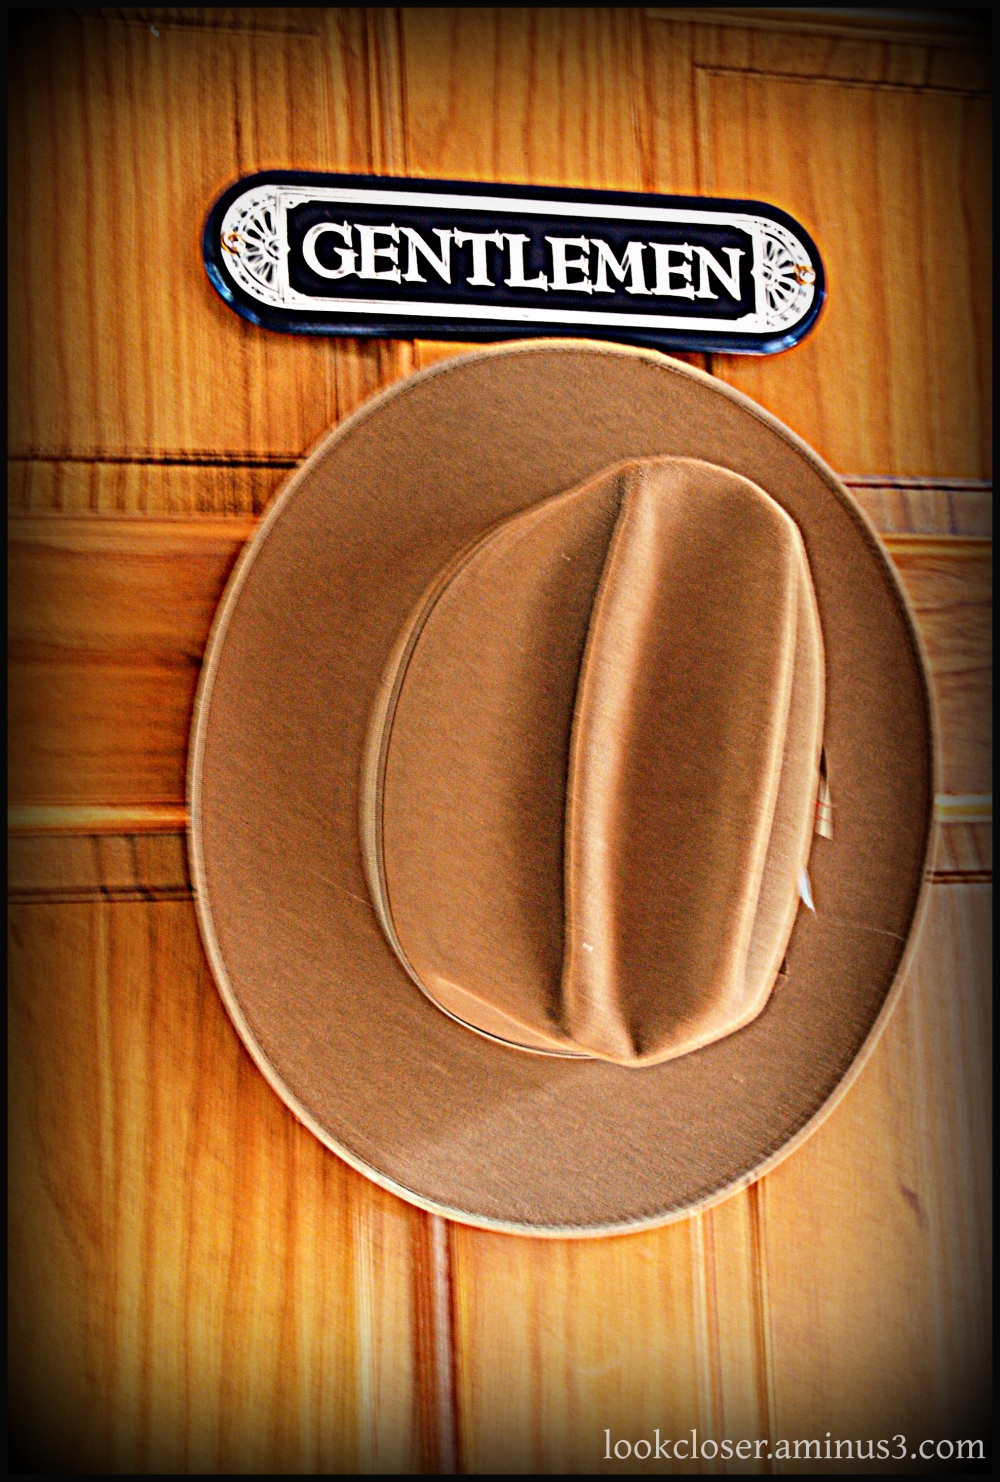 hat wood door gentlemen